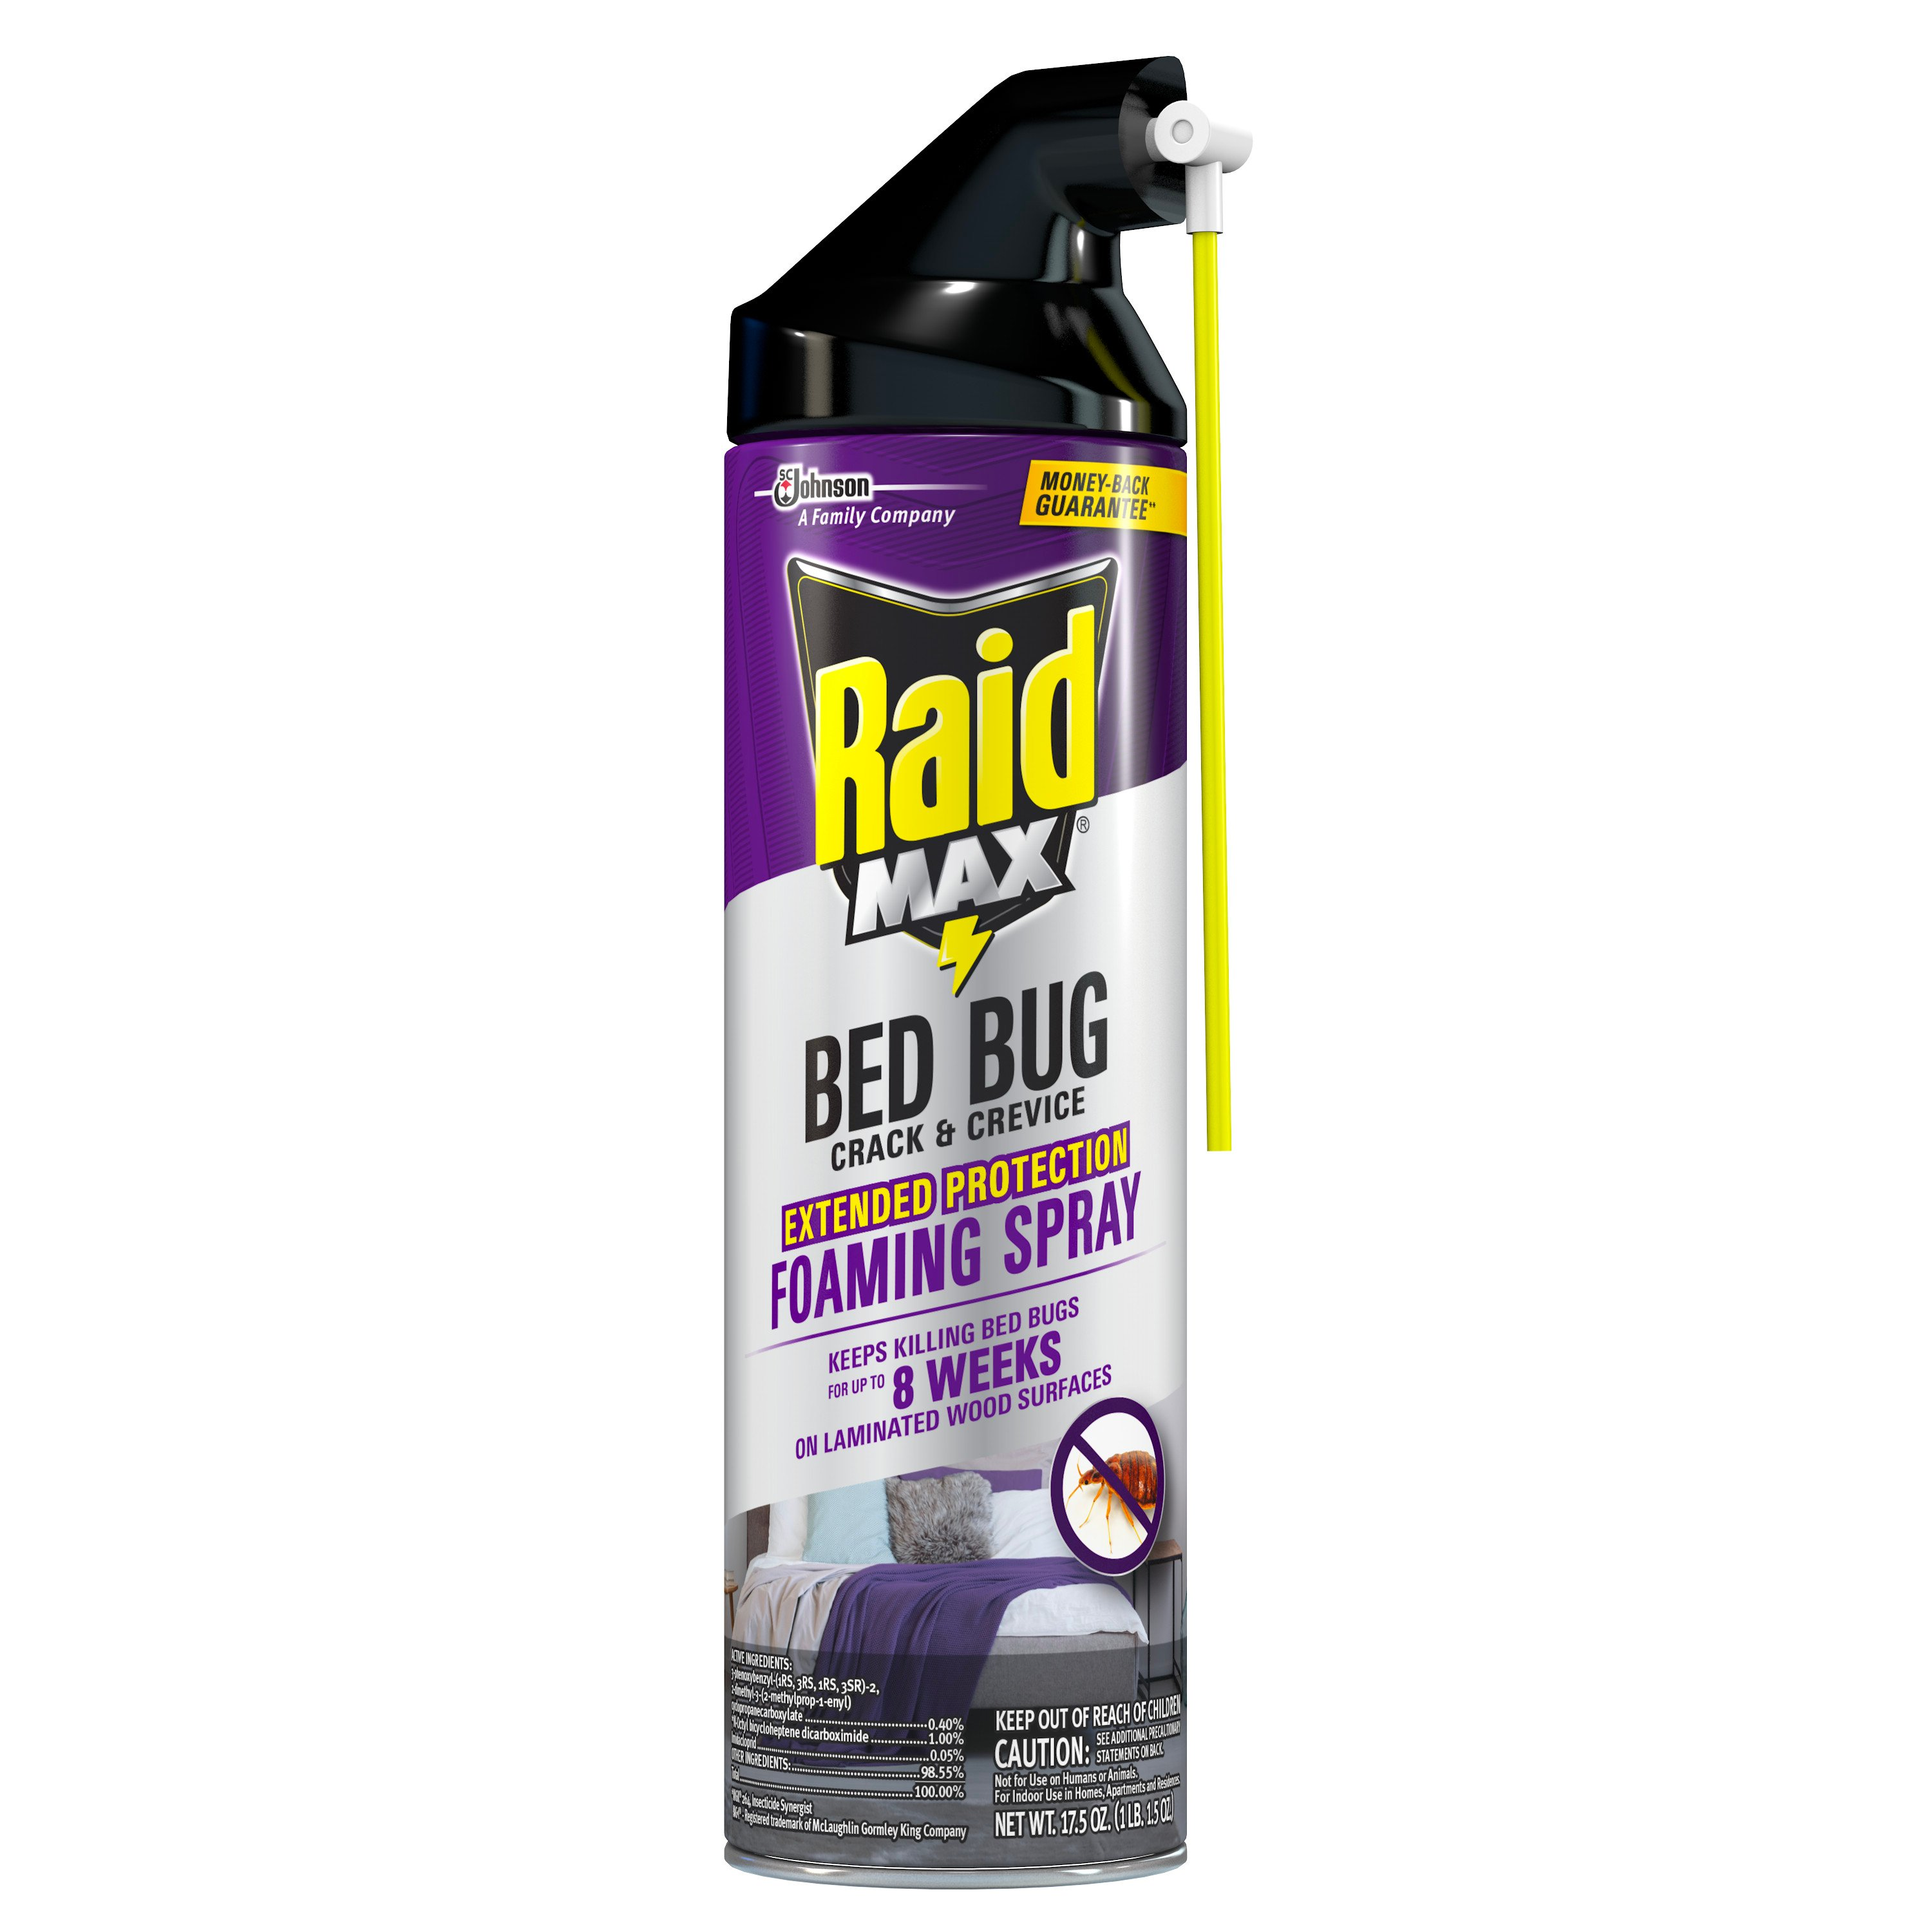 Raid Max Bed Bug Crack Crevice Extended Protection Foaming Spray Shop Insect Killers At H E B